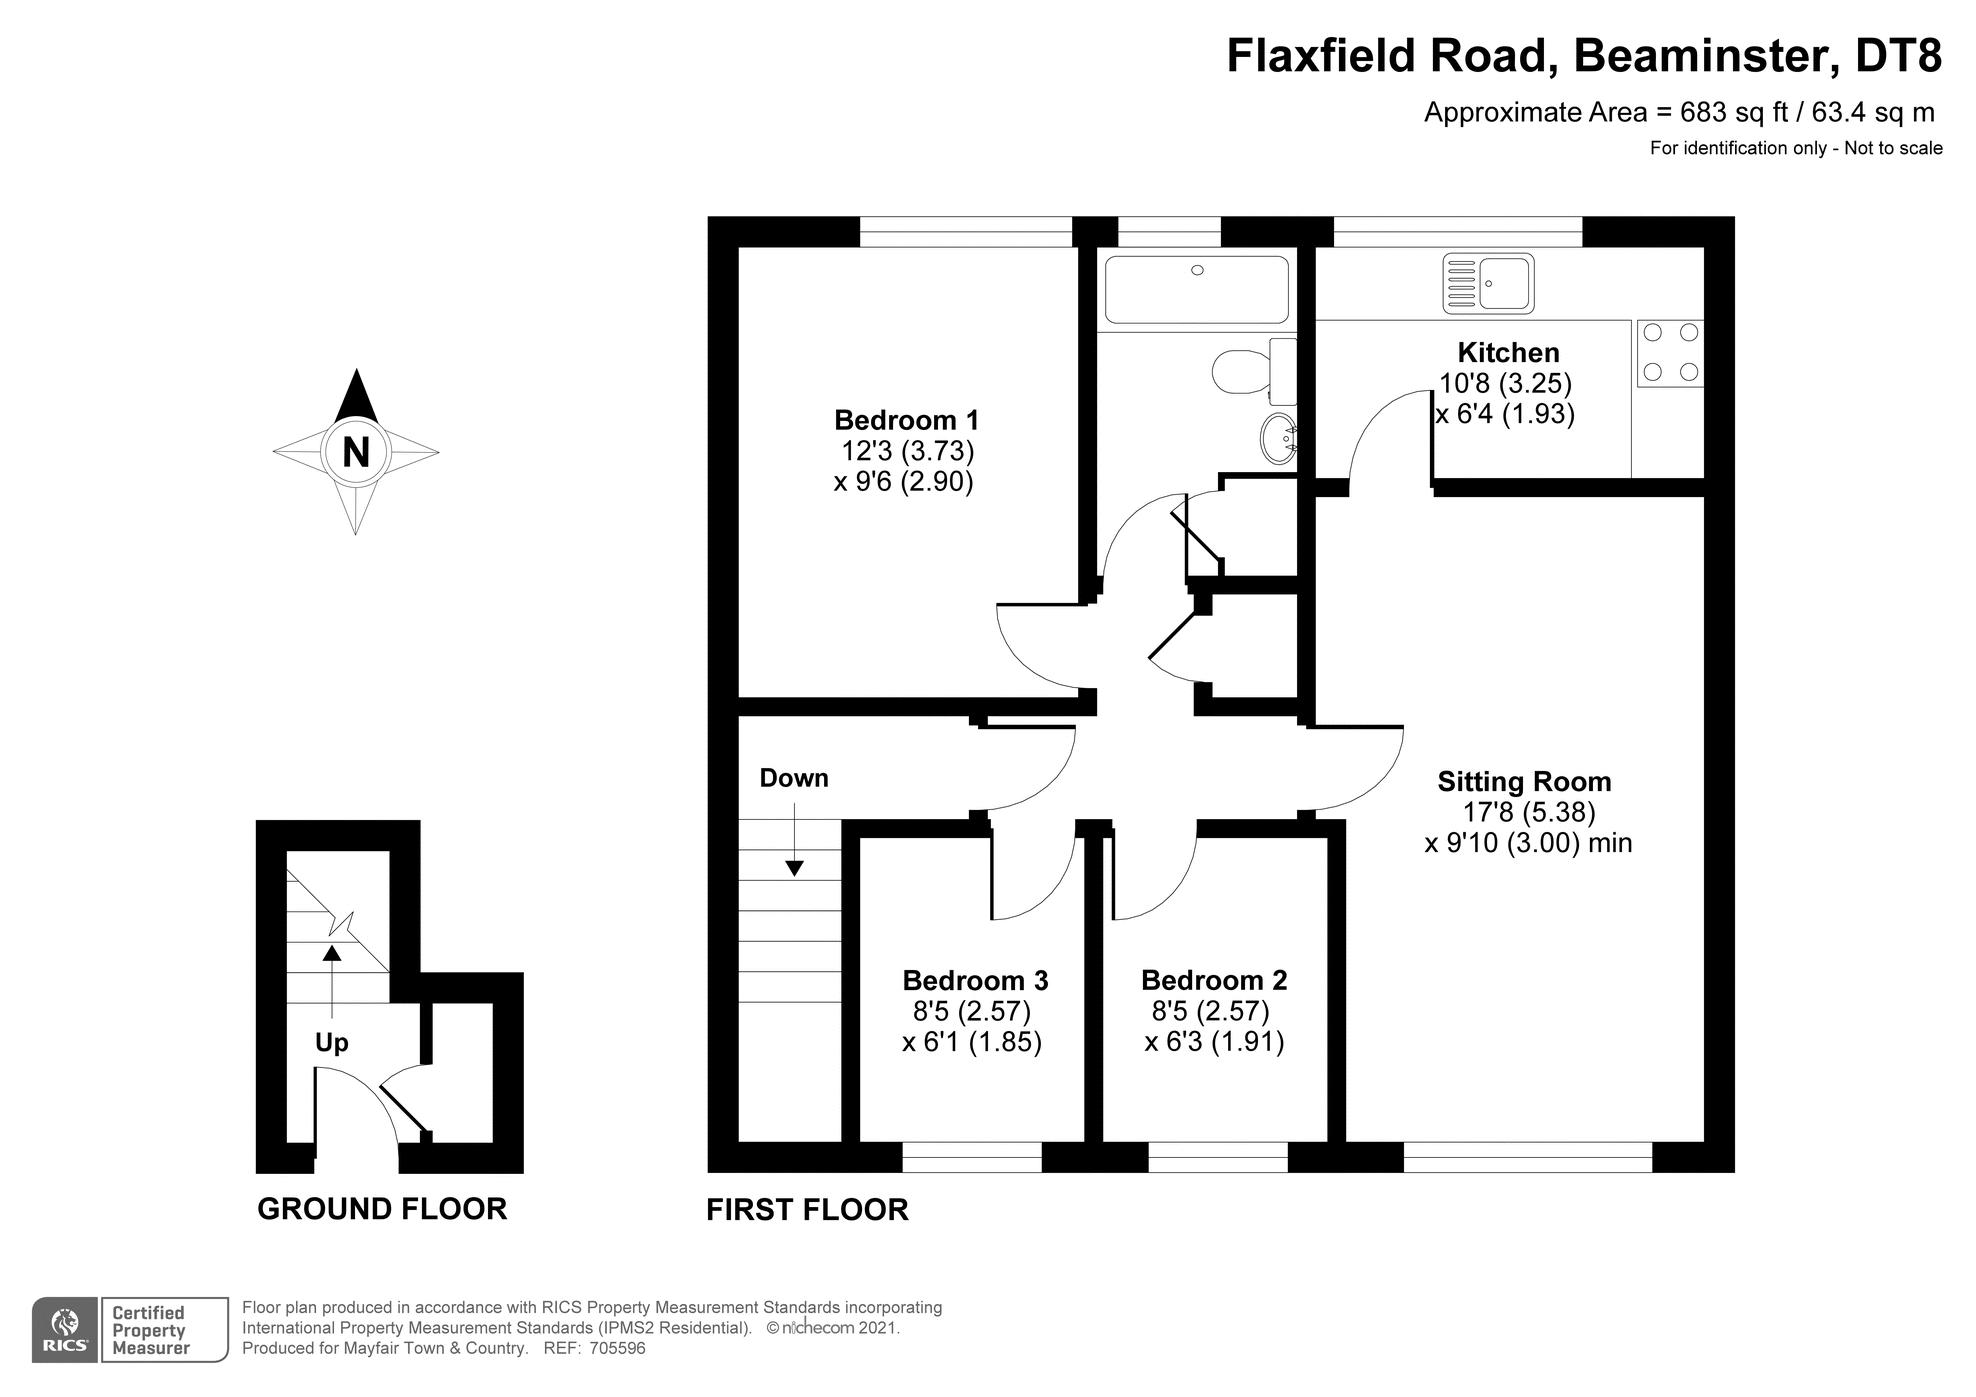 Flaxfield Road